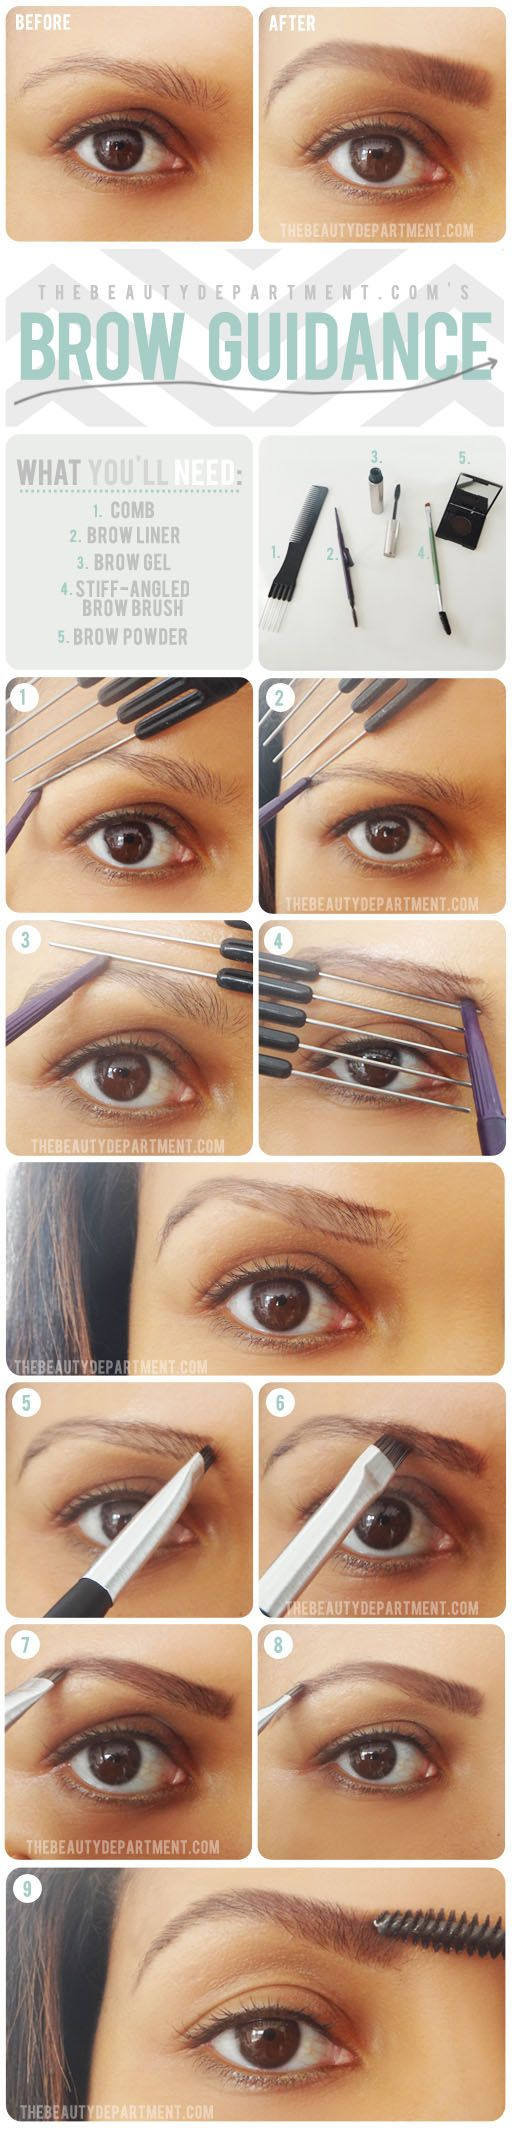 Brow Guidance - Tips for perfect eyebrows beauty